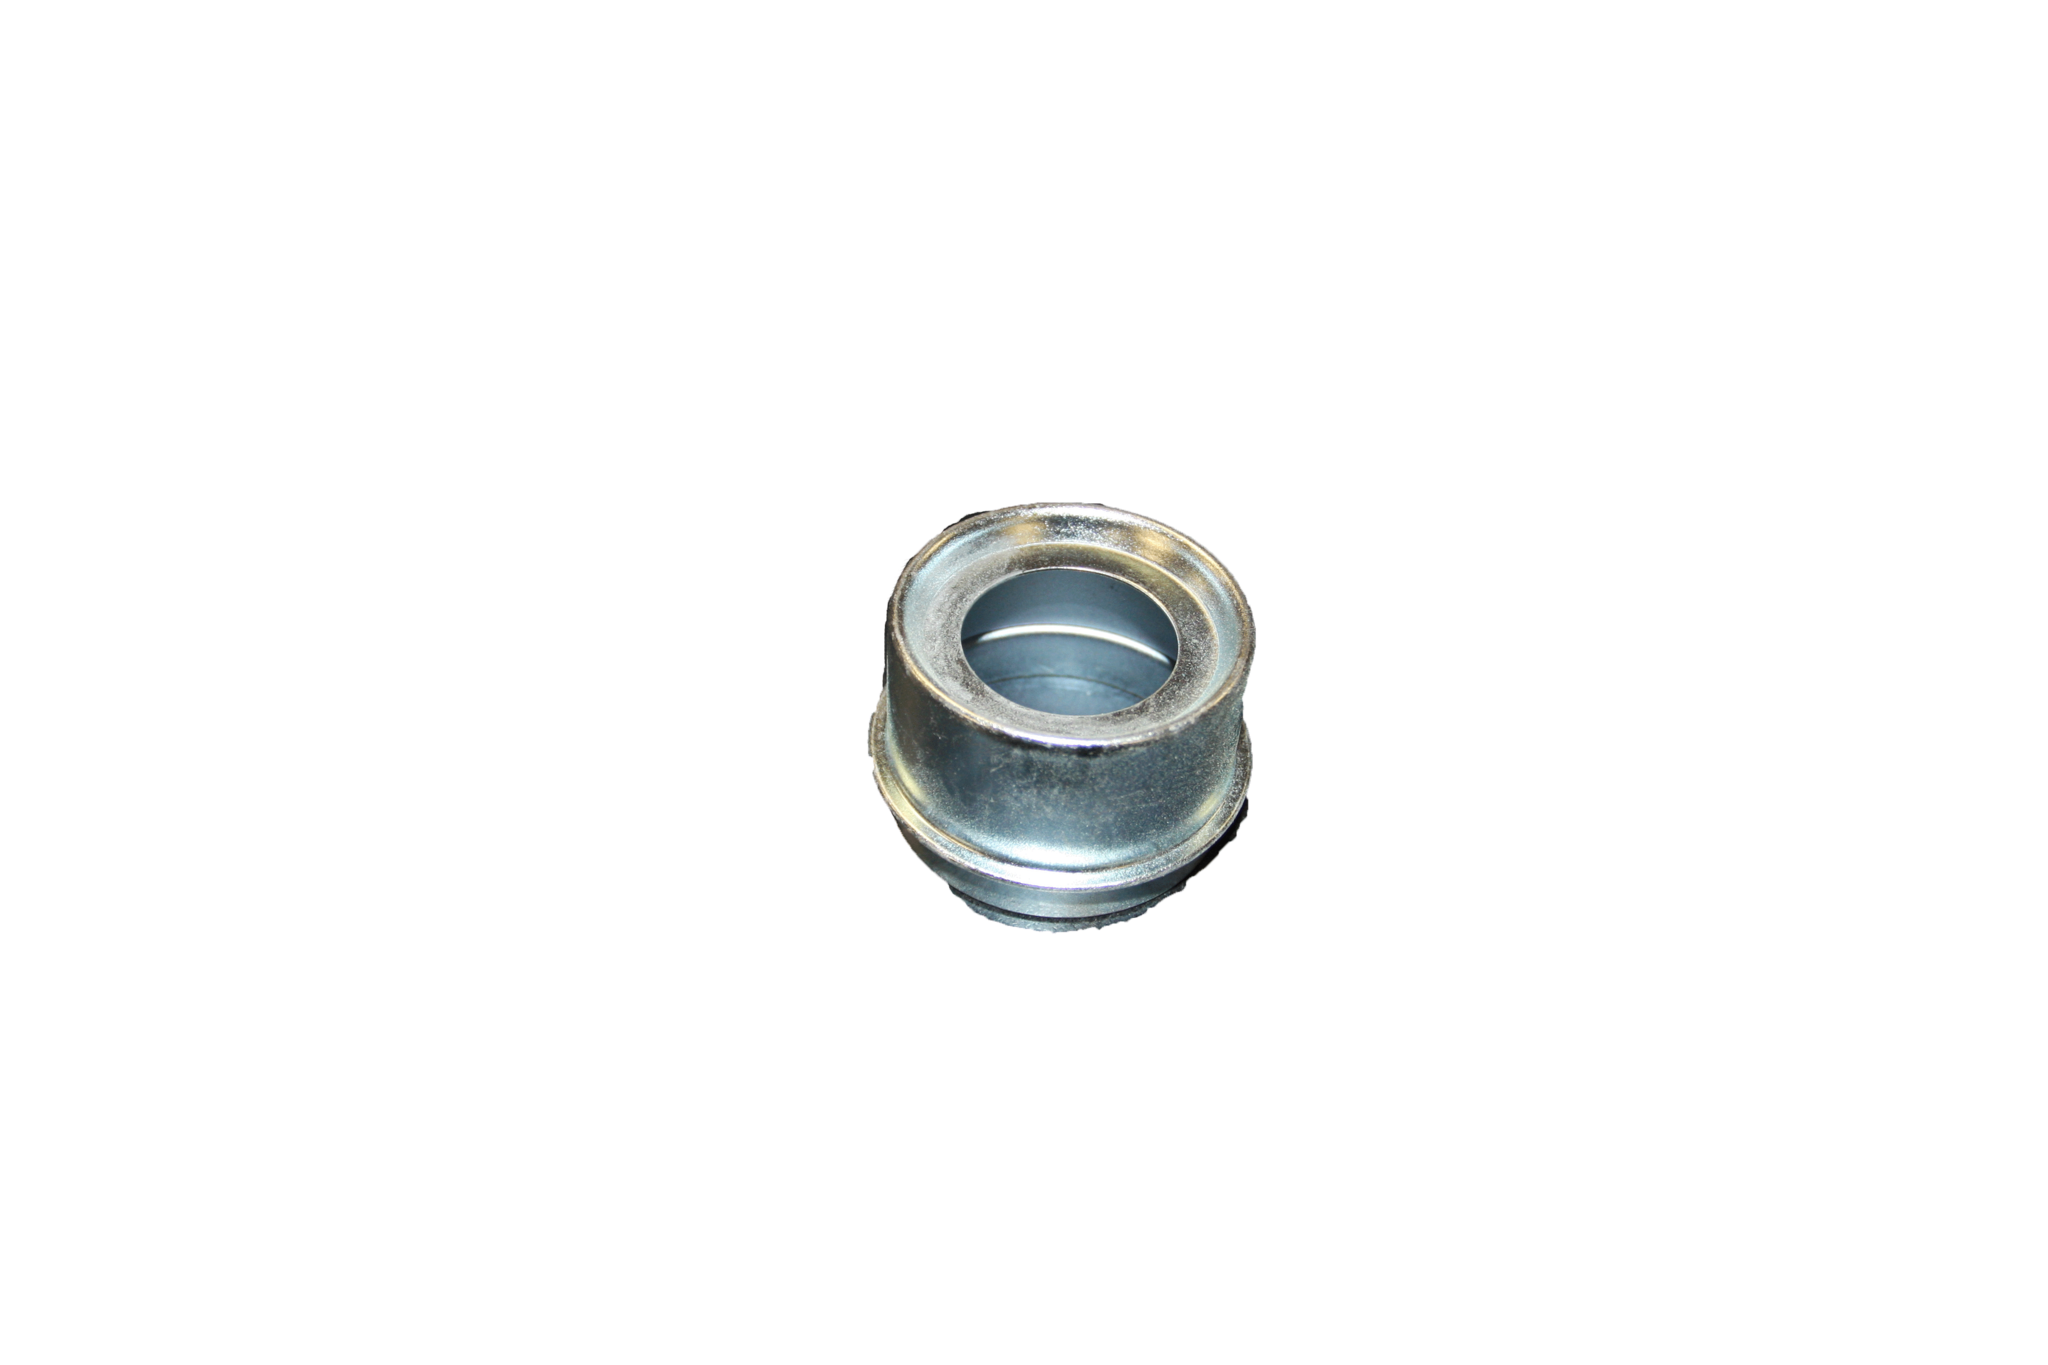 Axle Metal Grease Cap with Rubber Plug